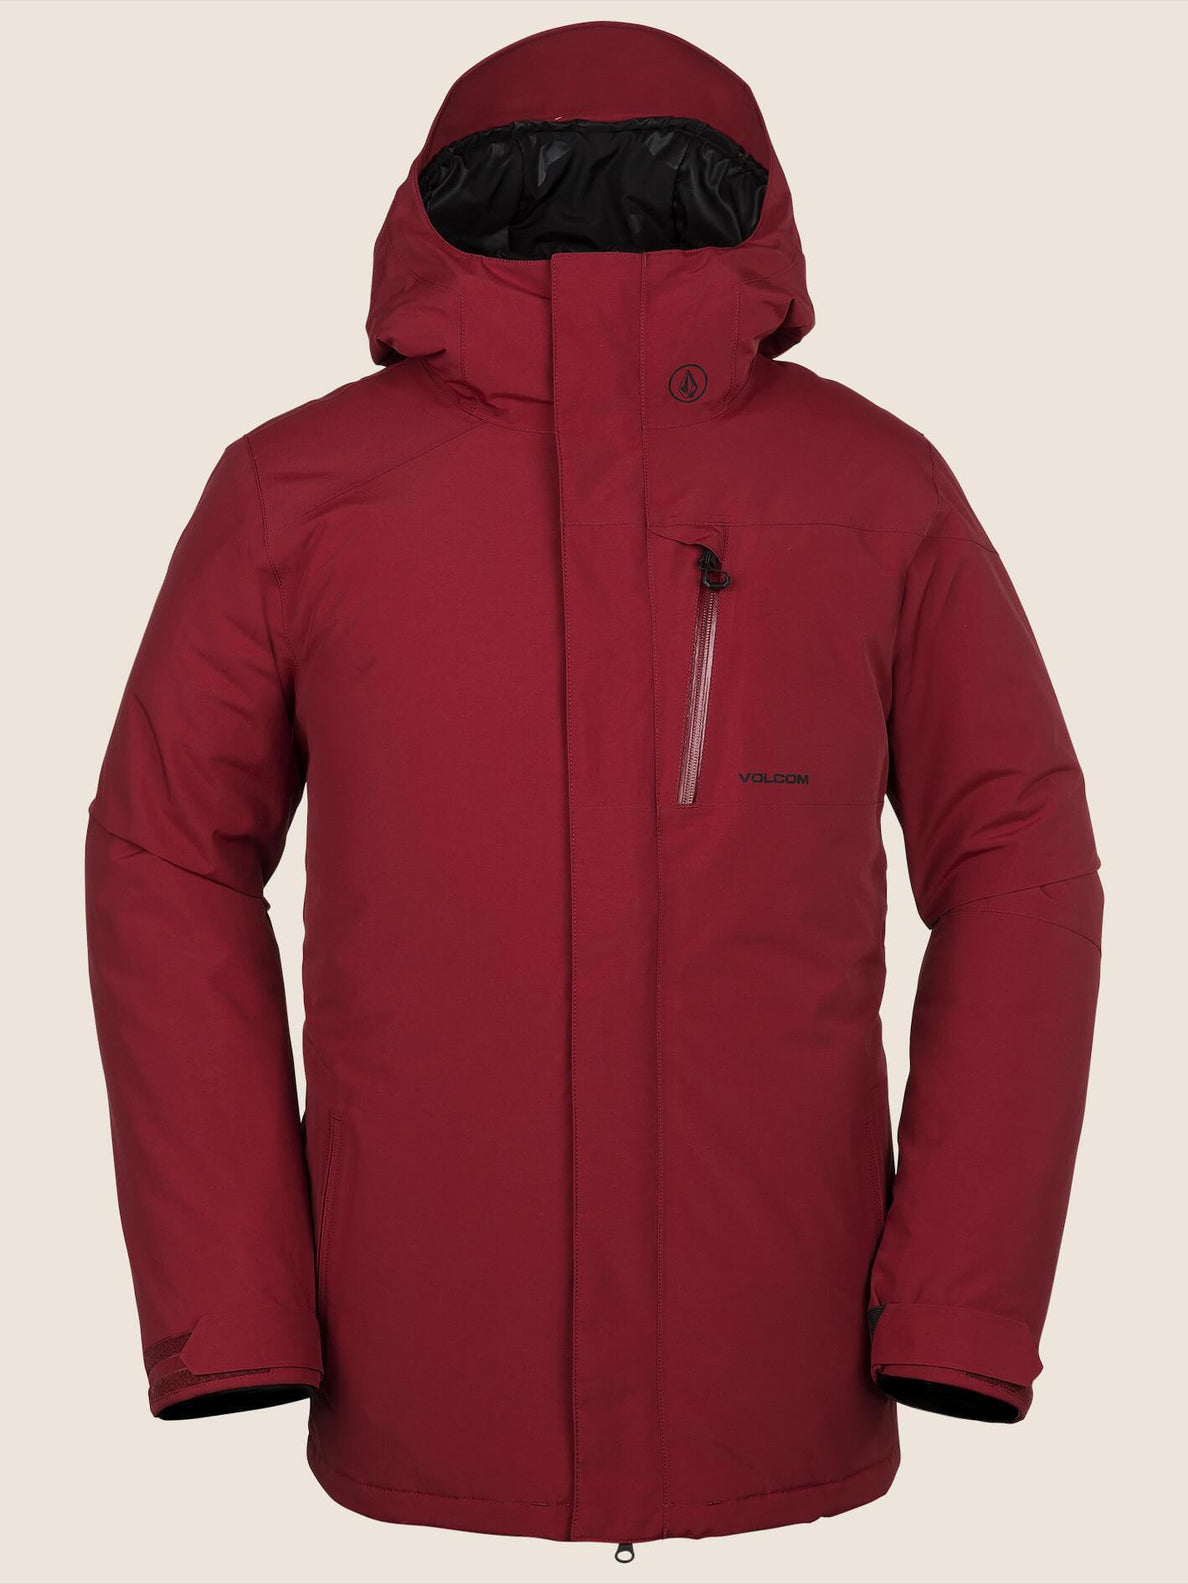 L Insulated Gore-Tex Jacket - Snowboarding  4171ccf682c